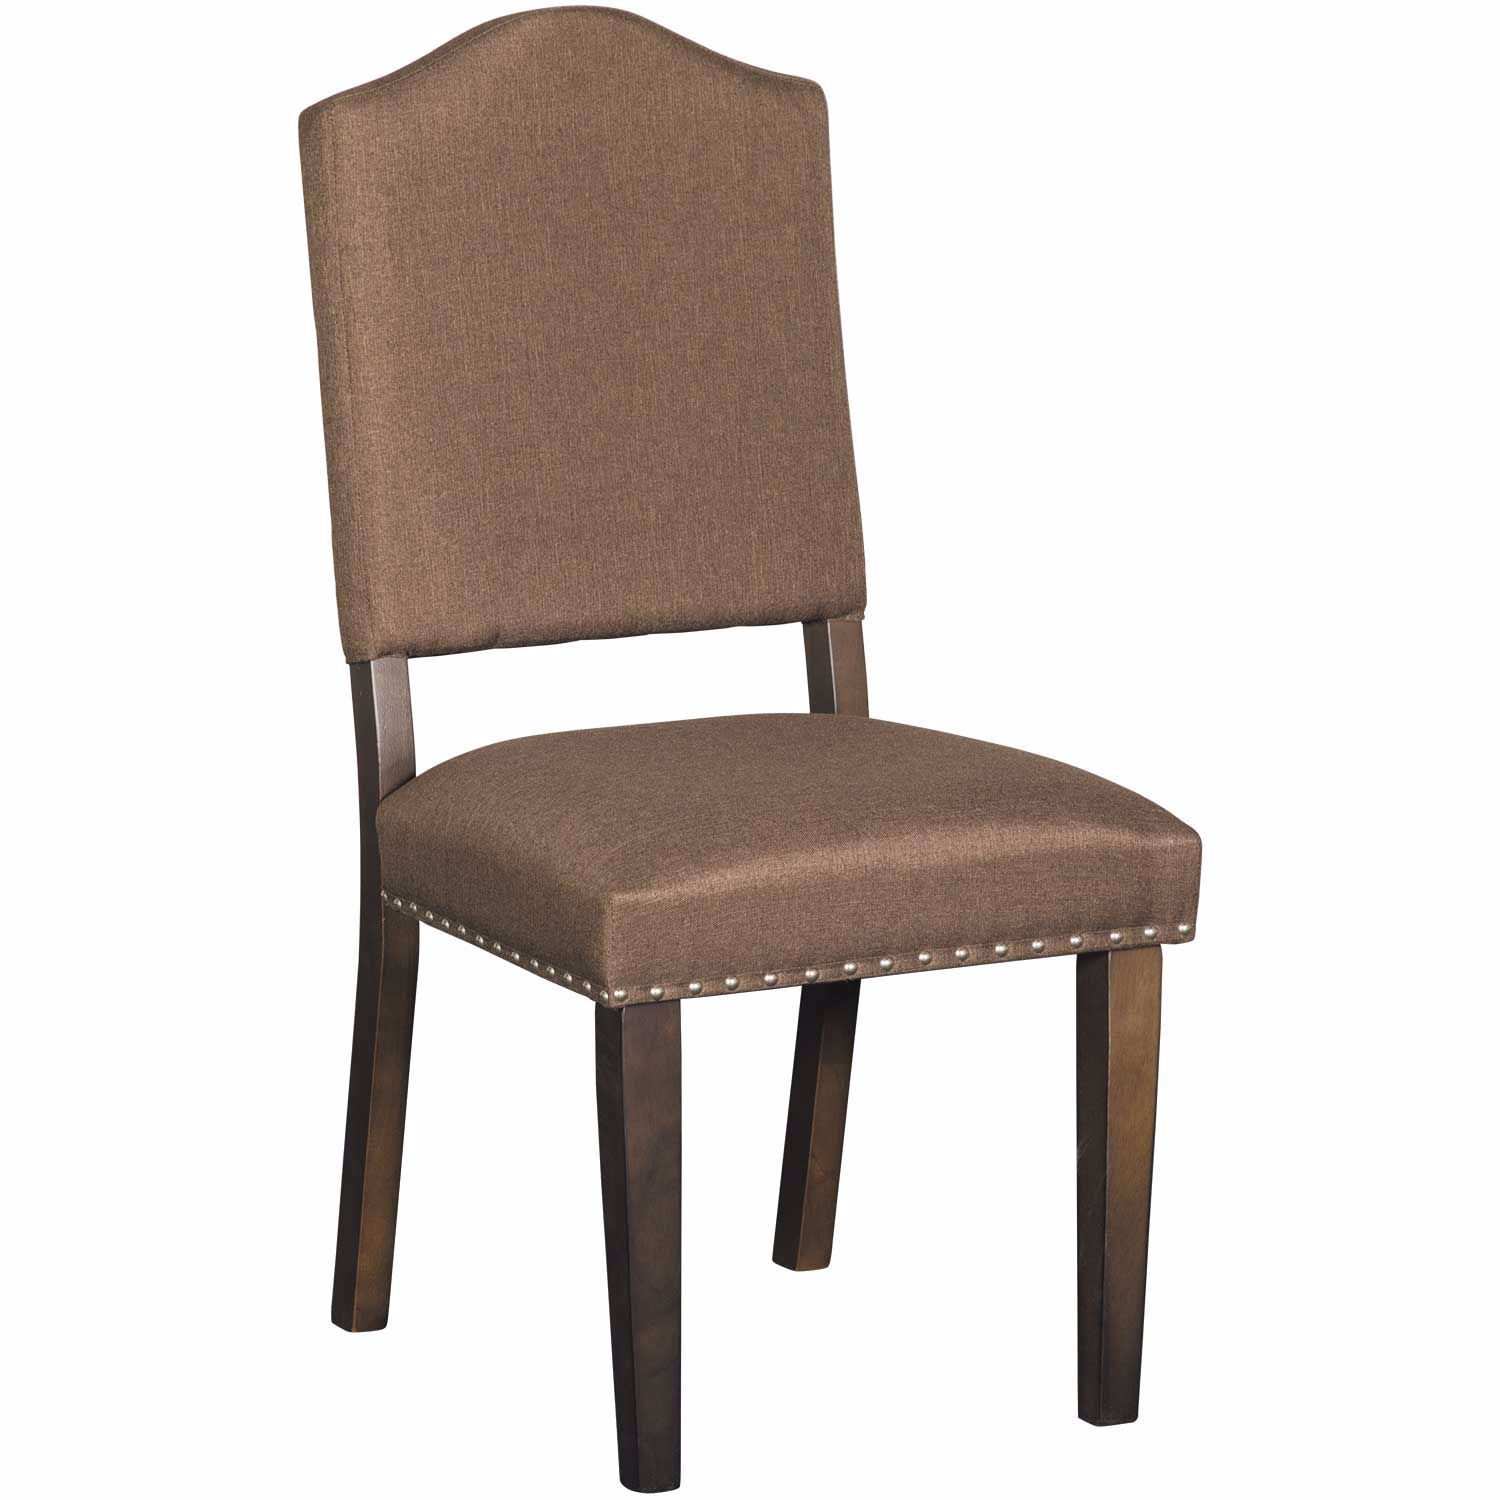 Picture of Ridgely Upholstered Dining Chair